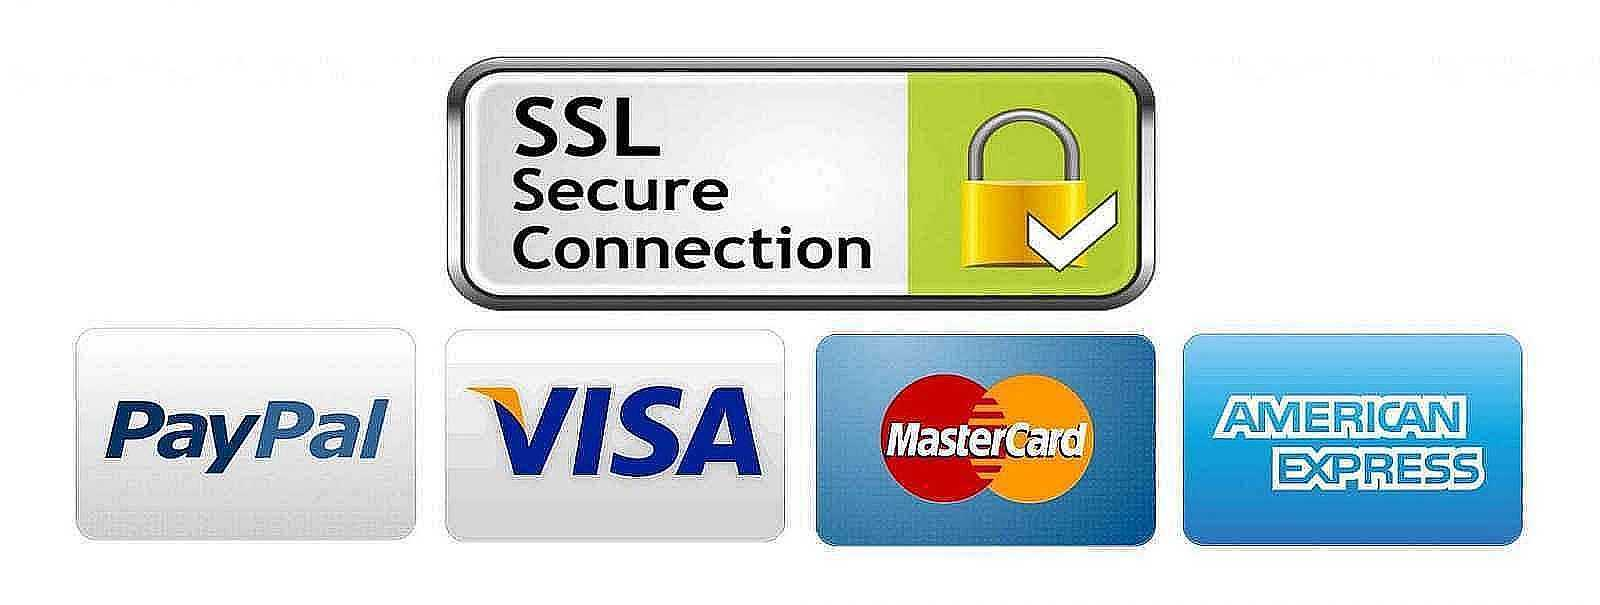 SSL and Credit Cards